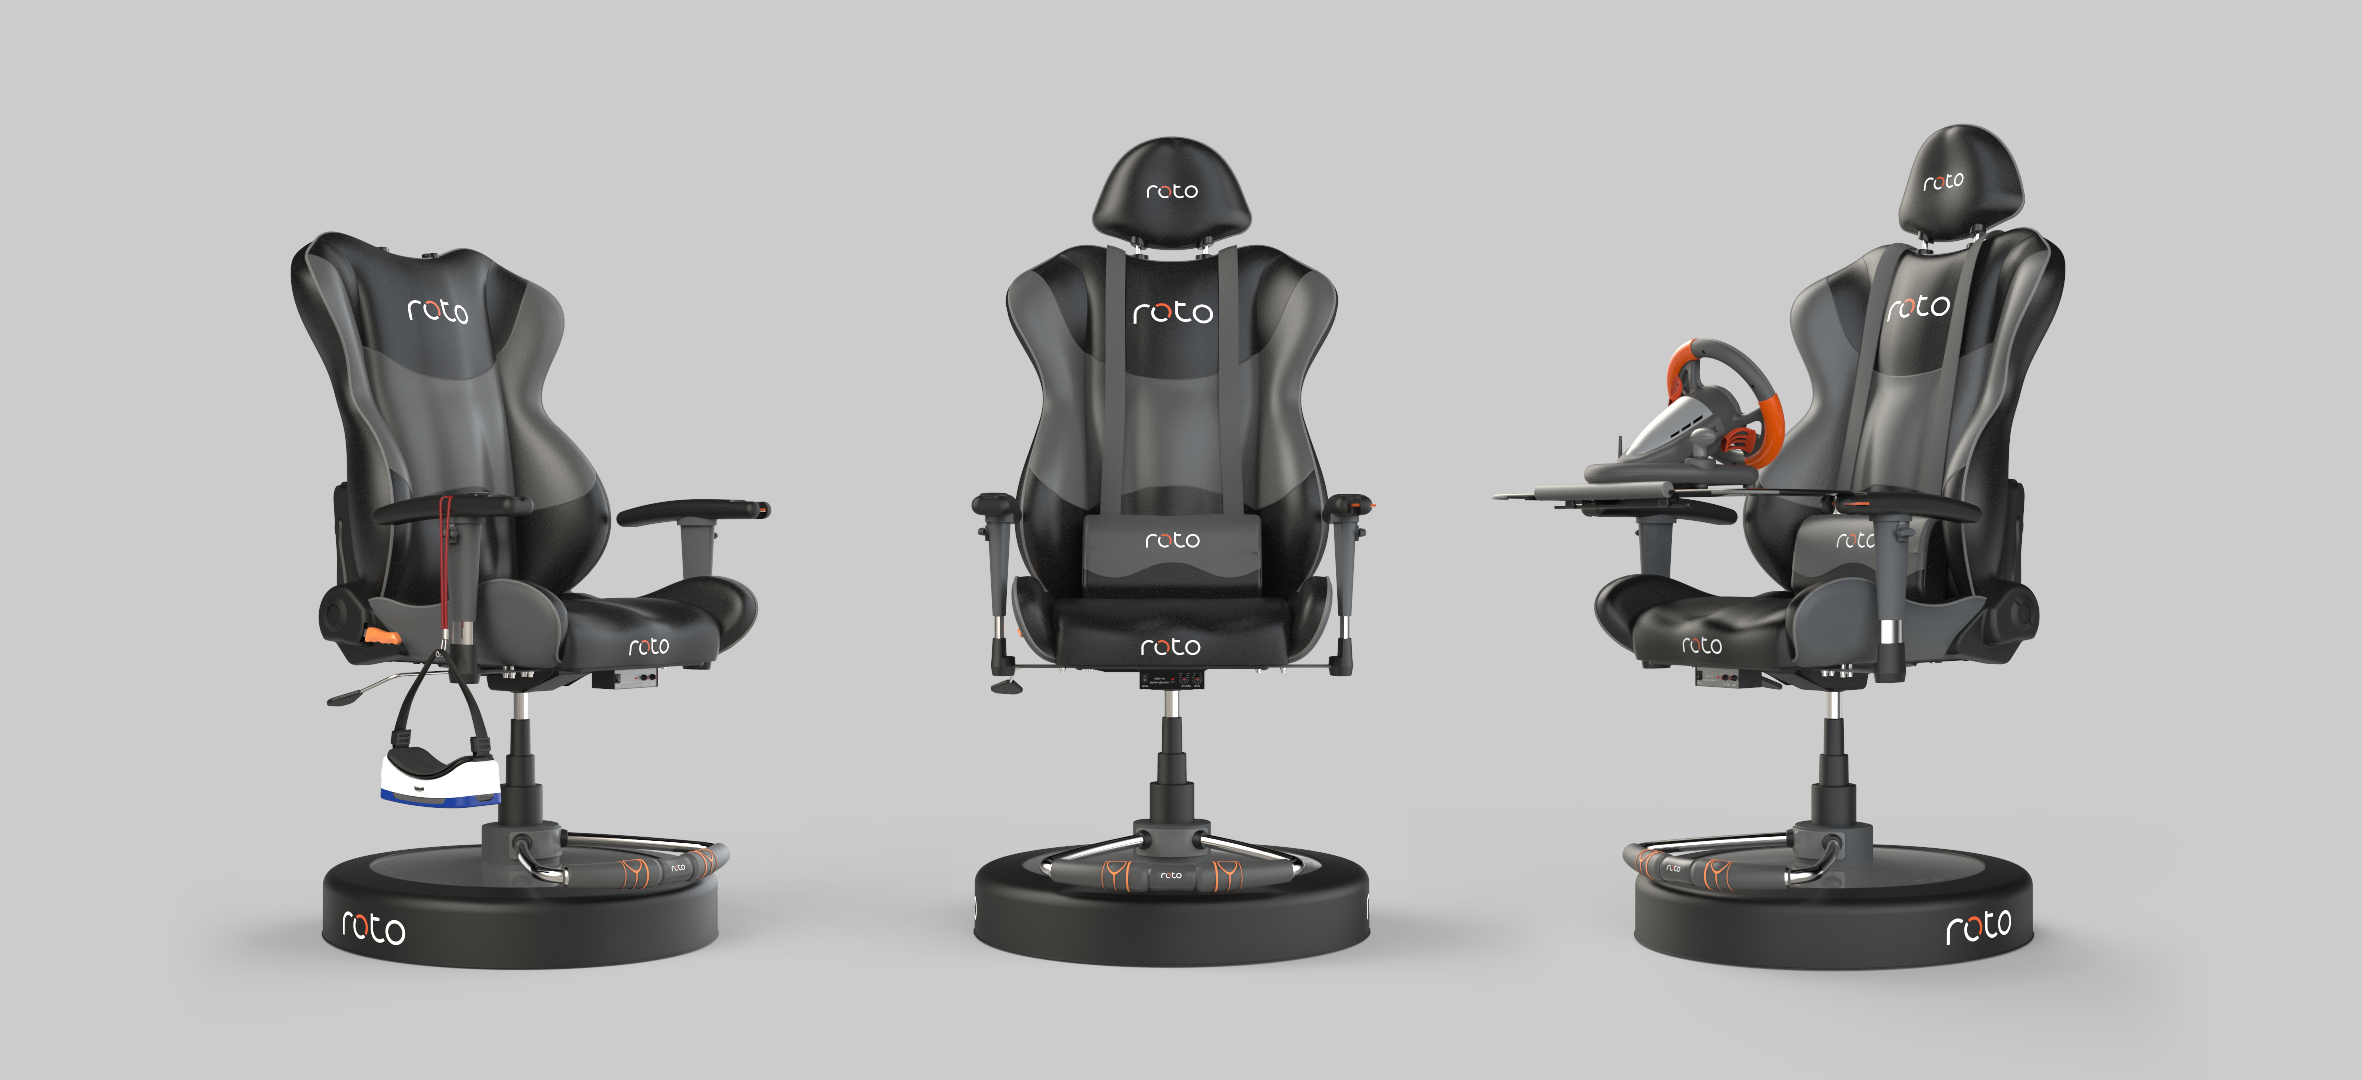 roto vr is a $500 motorised swivel chair for vr gaming news - mod db